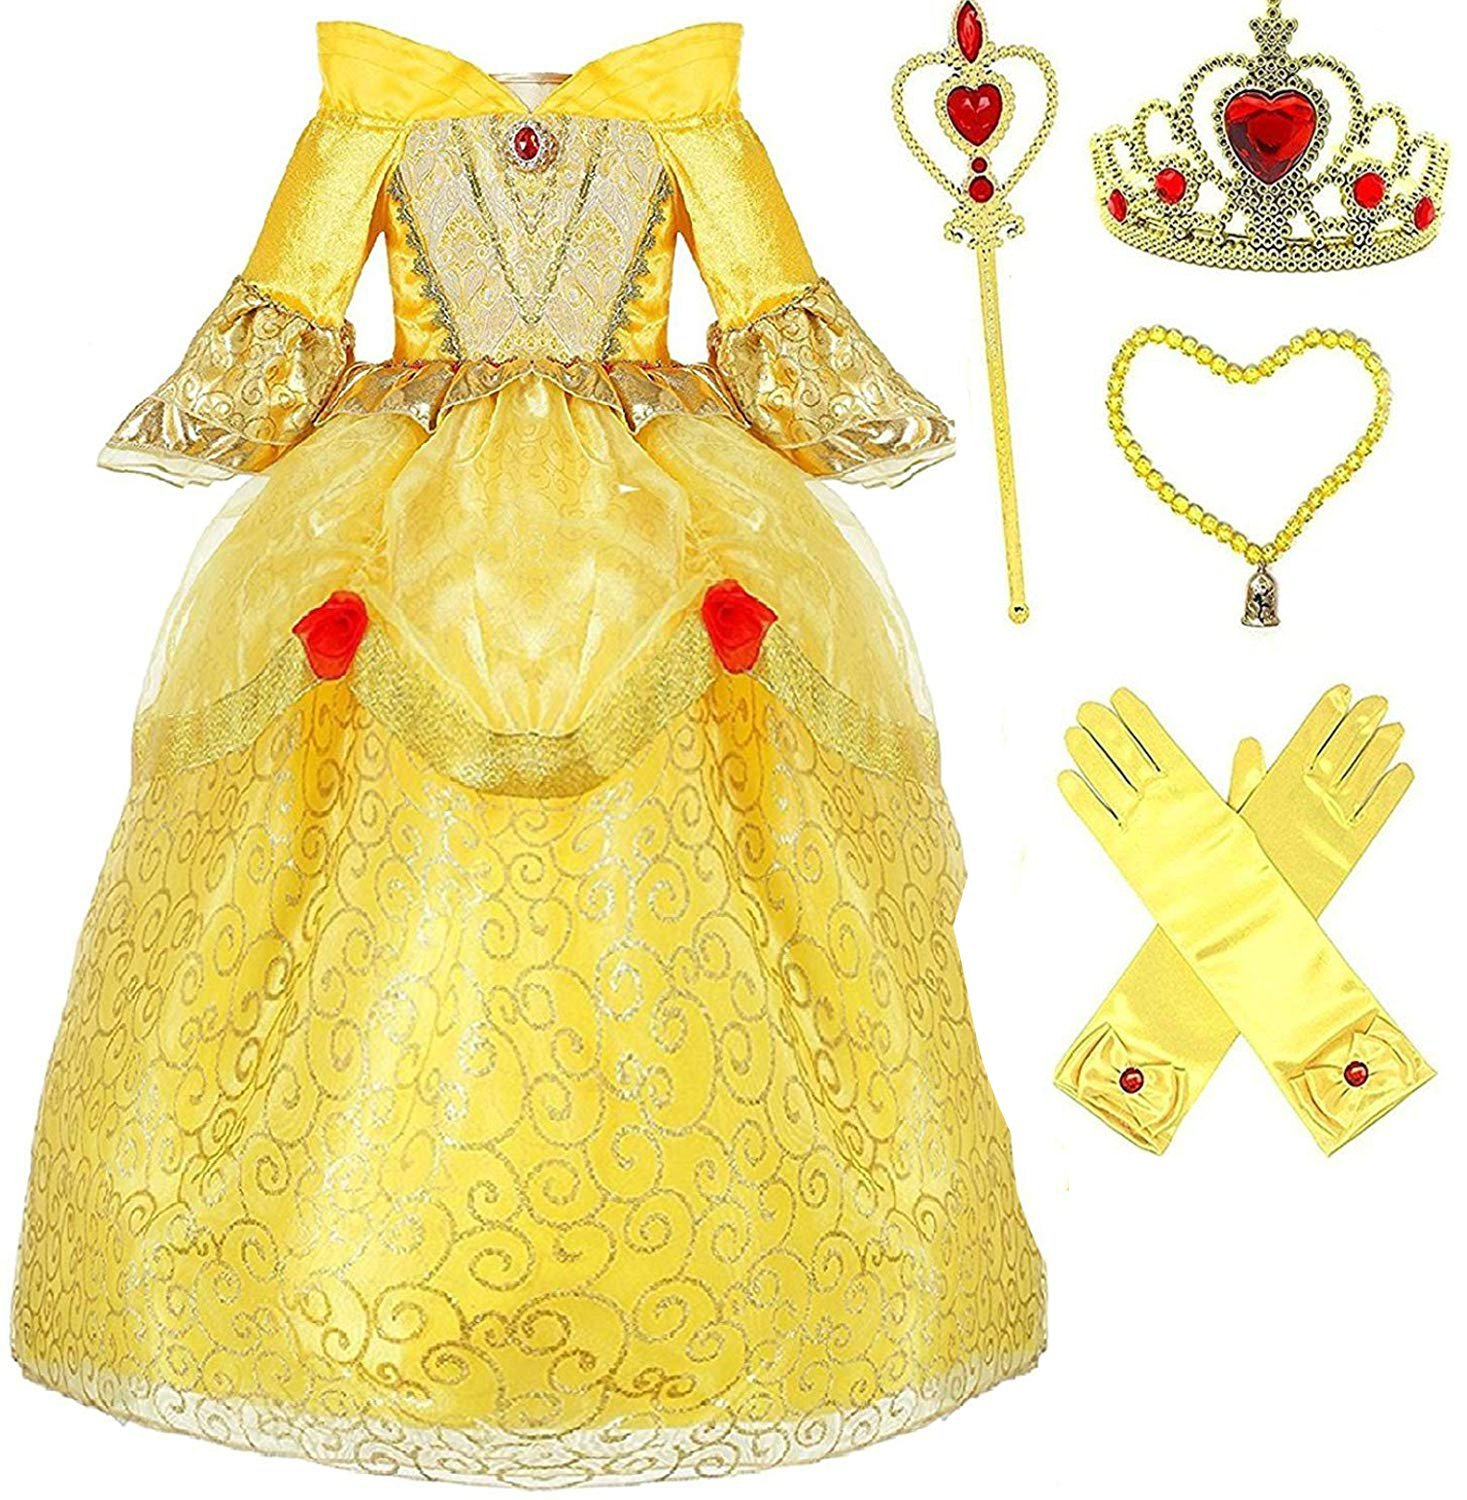 Princess Belle Deluxe Yellow Party Dress Costume (3-4, Style 3)